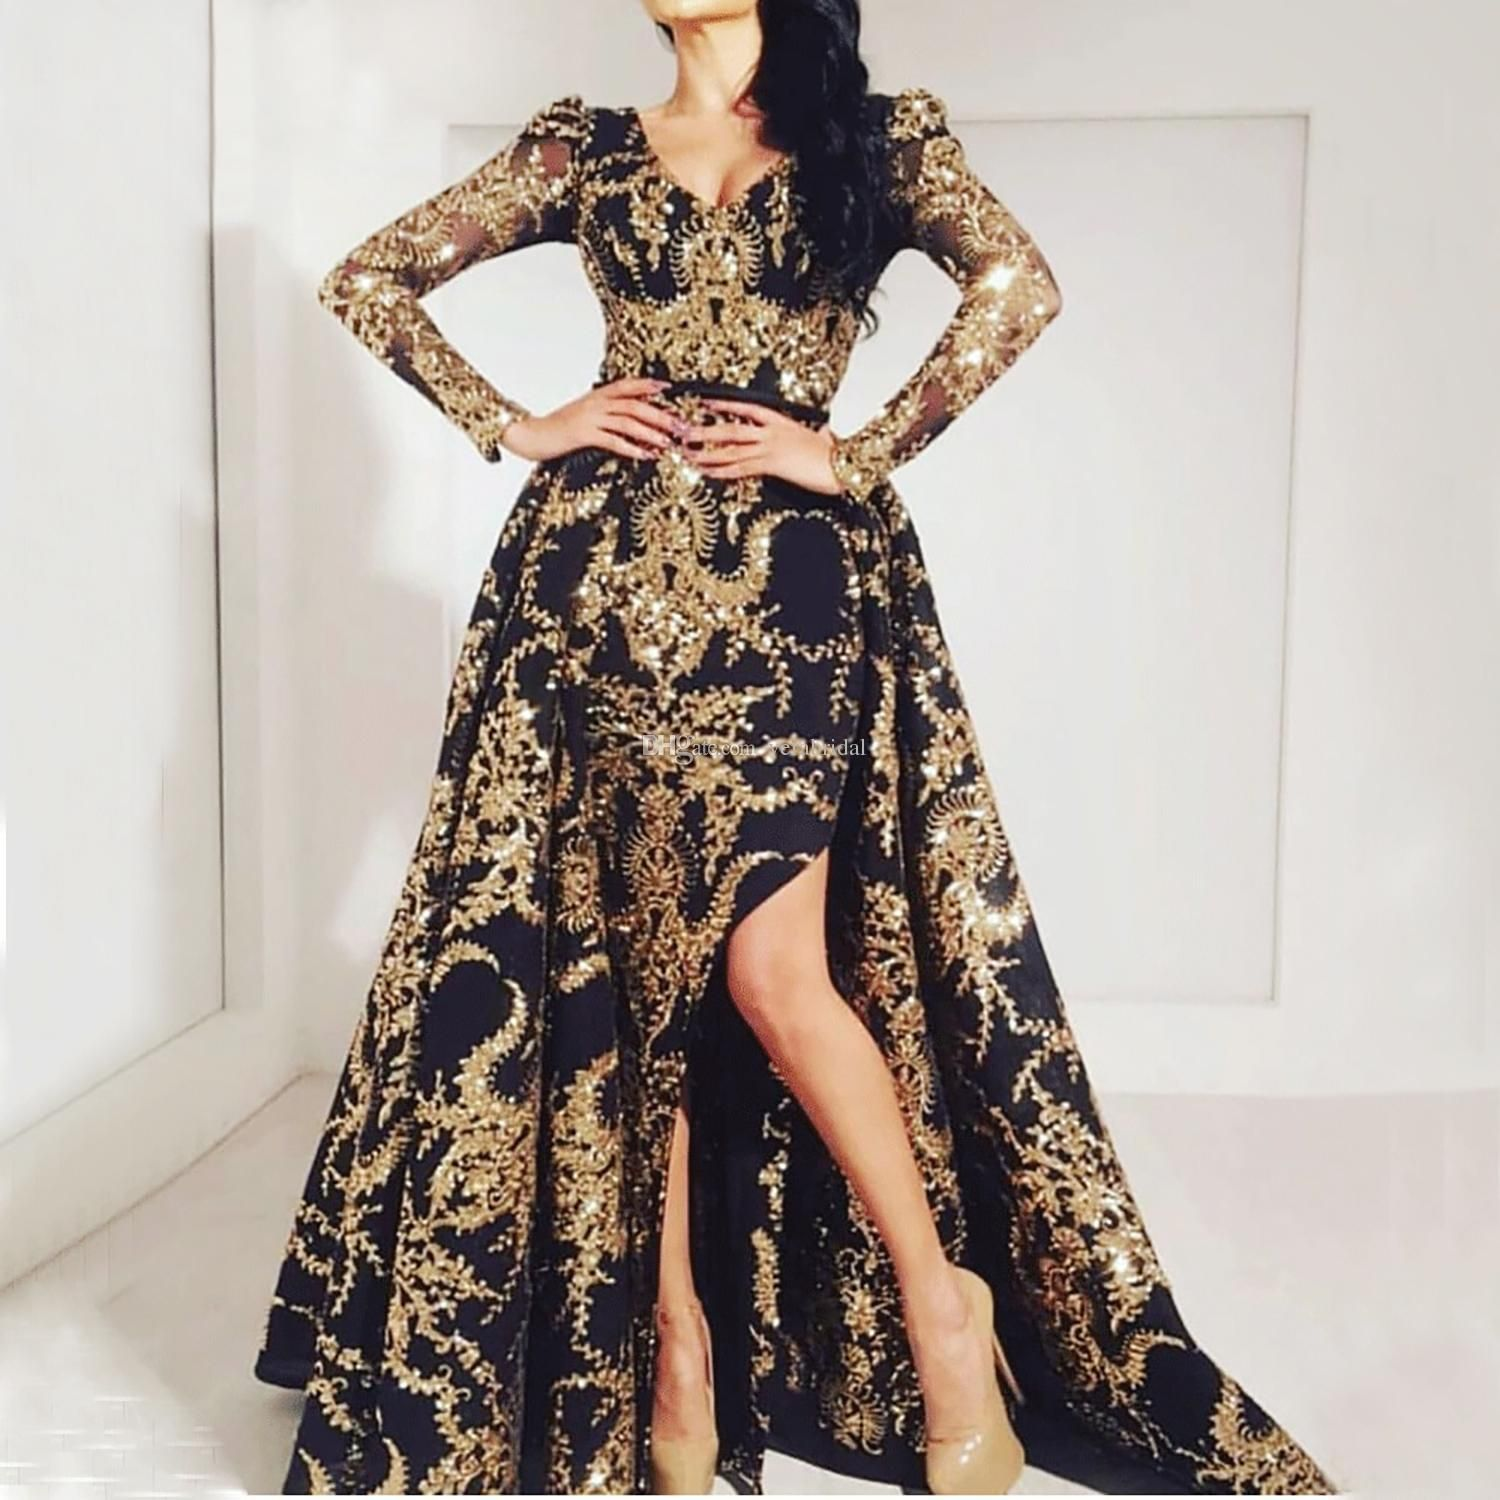 Saudi Arabic Mermaid Evening Dress Long Sleeves 2019 Elegant Kaftan Dubai Moroccan Prom Dresses With Over Skirt Train Party Gown Weddings & Events